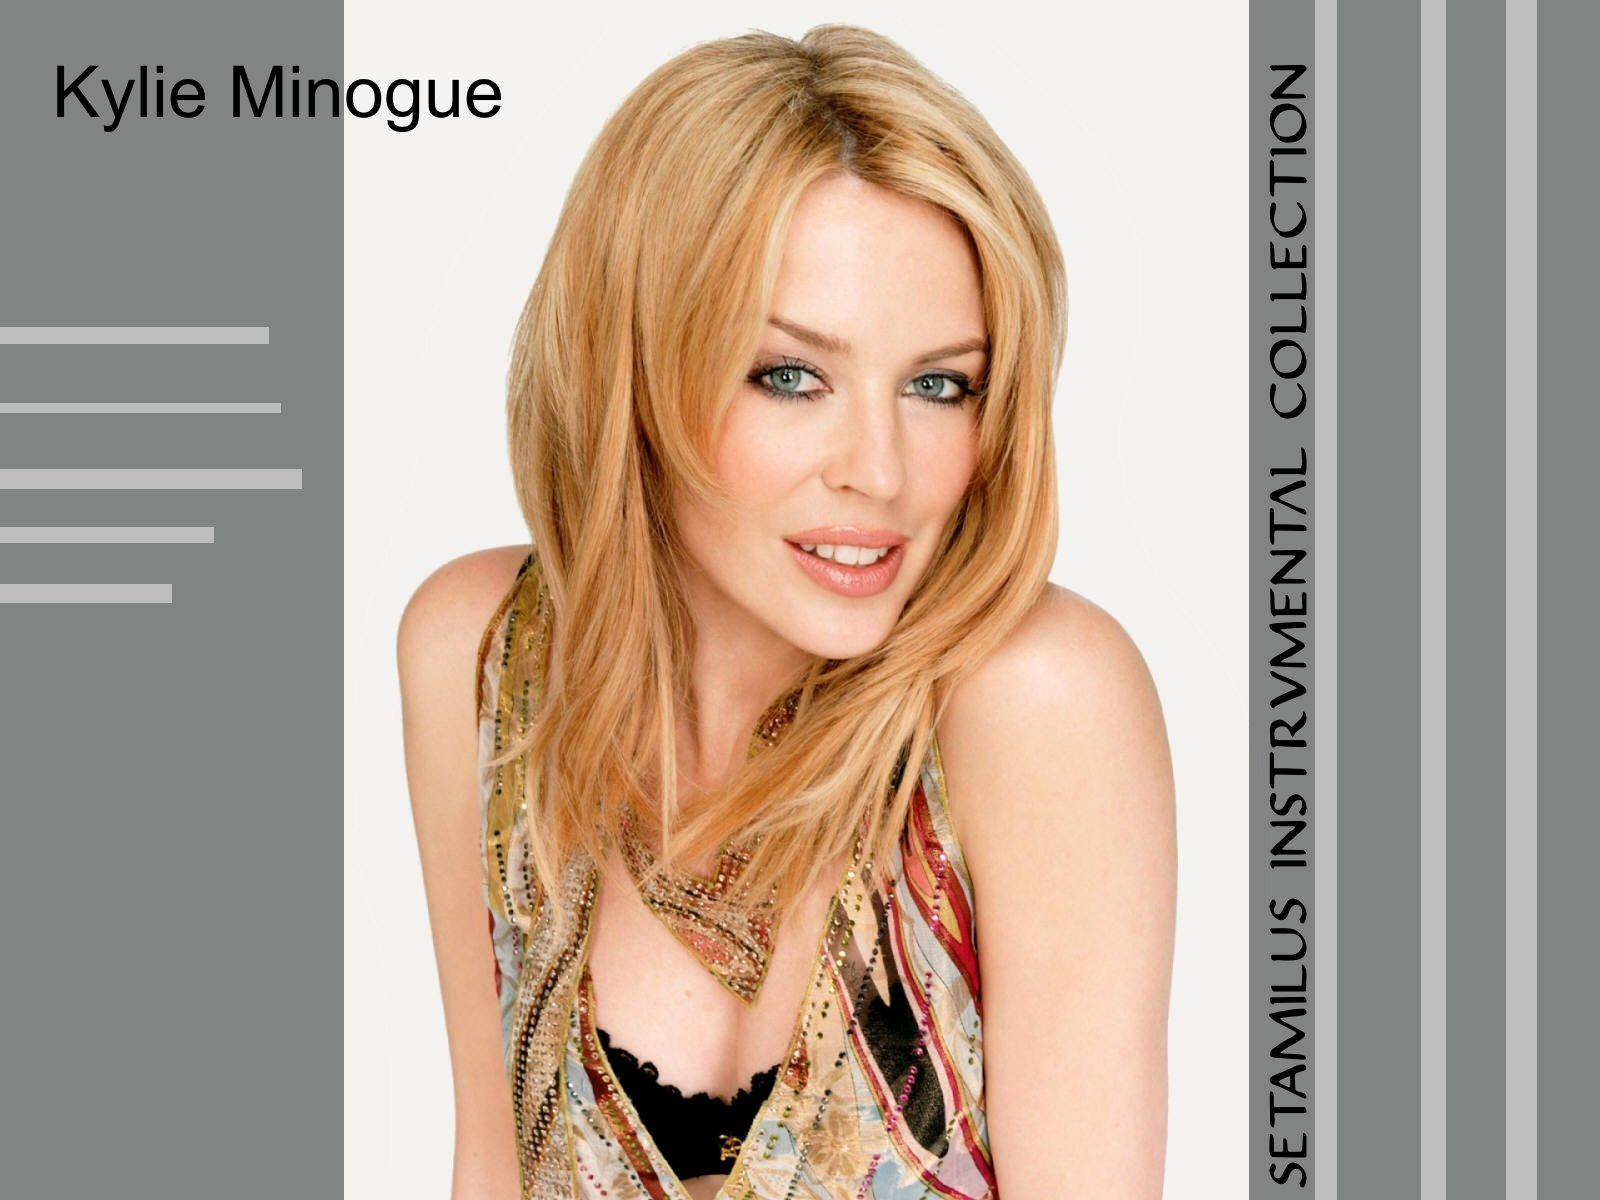 http://1.bp.blogspot.com/_3ek7gXqsl0o/SwSWFKKqxJI/AAAAAAAAAAM/49cDlP1L28s/s1600/Kylie+minogue+-+setamilu%C2%B4s+instrumental+collection.jpg